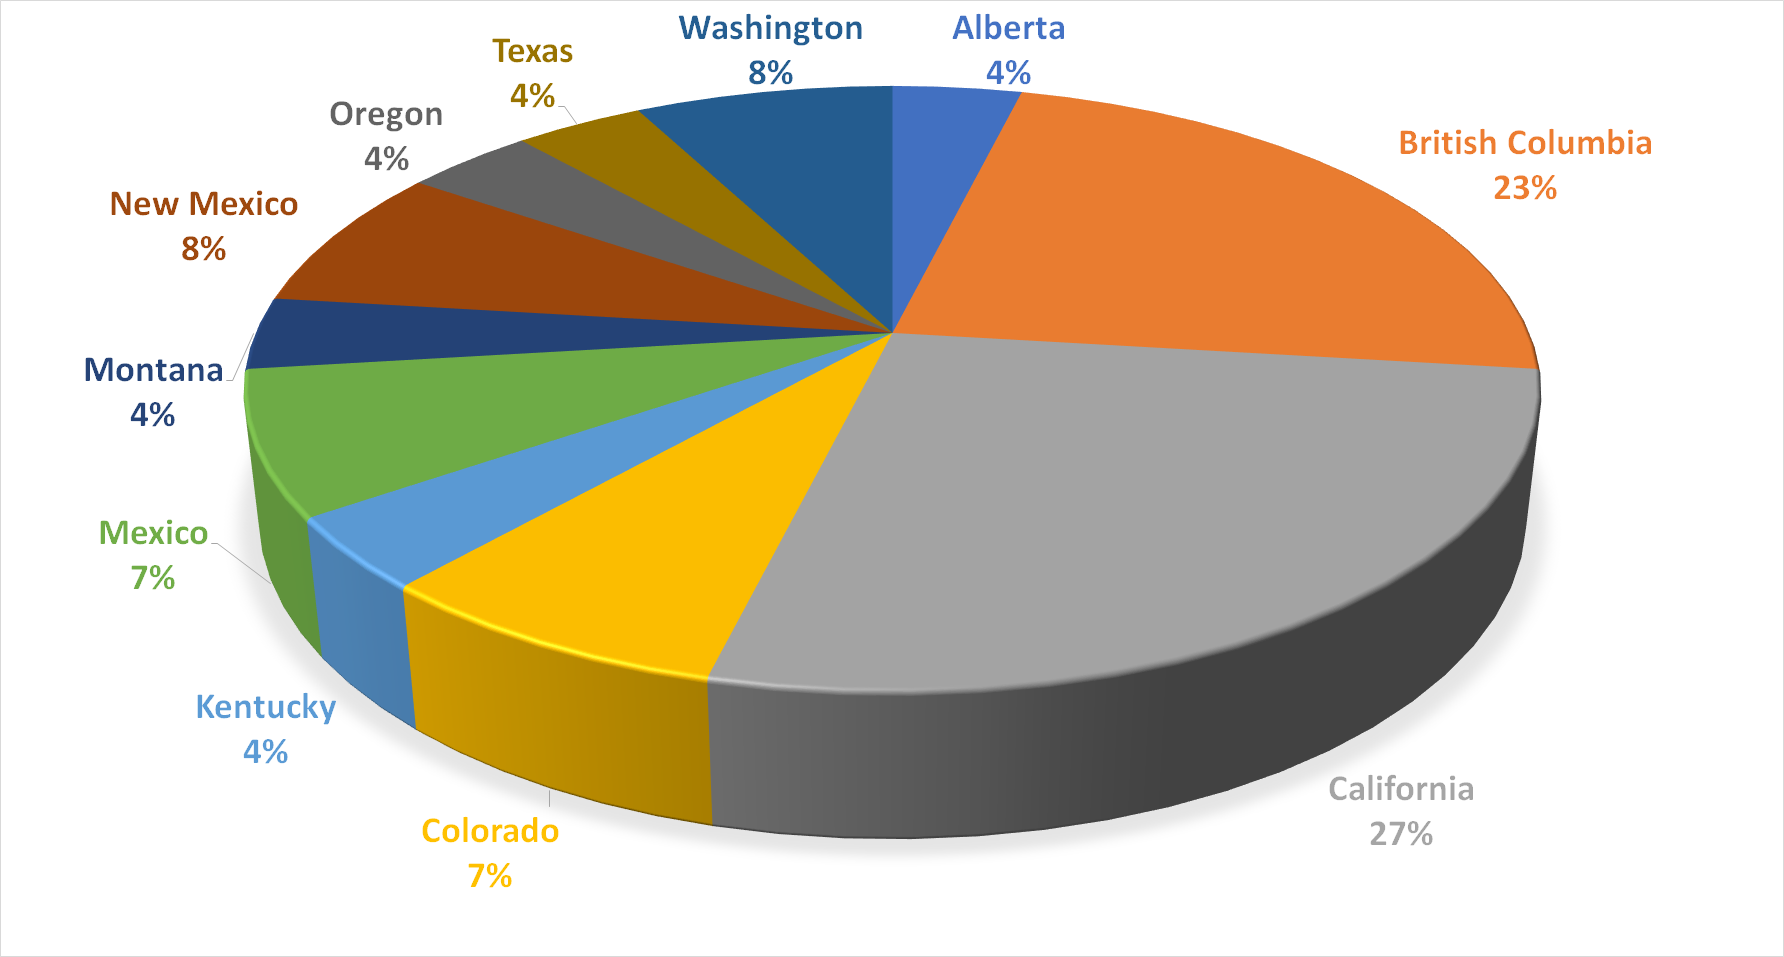 Pie chart showing the percentage of fatal cougar attacks across different locations